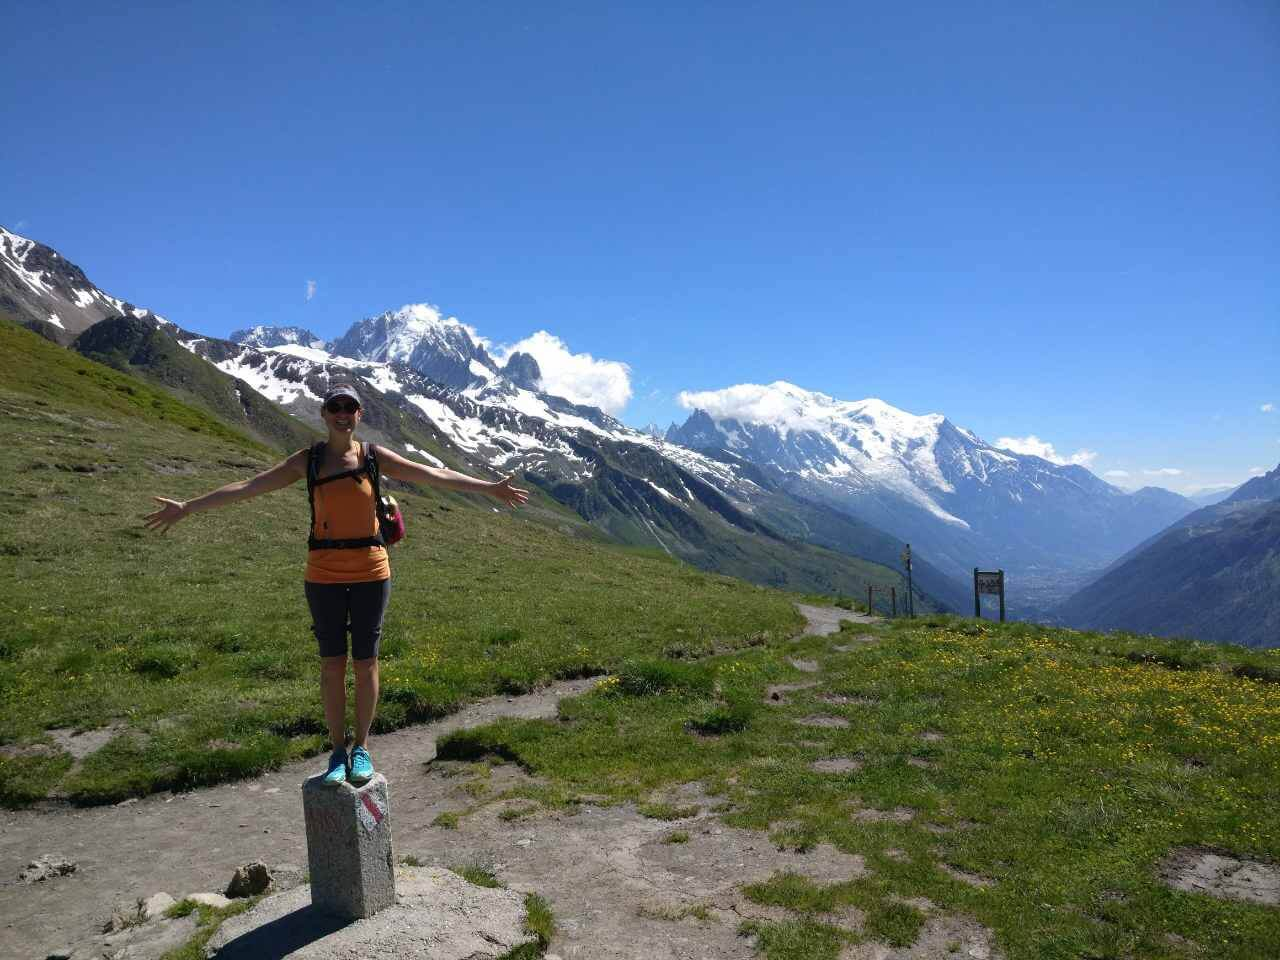 At Col de Balme, standing on the border between France and Switzerland